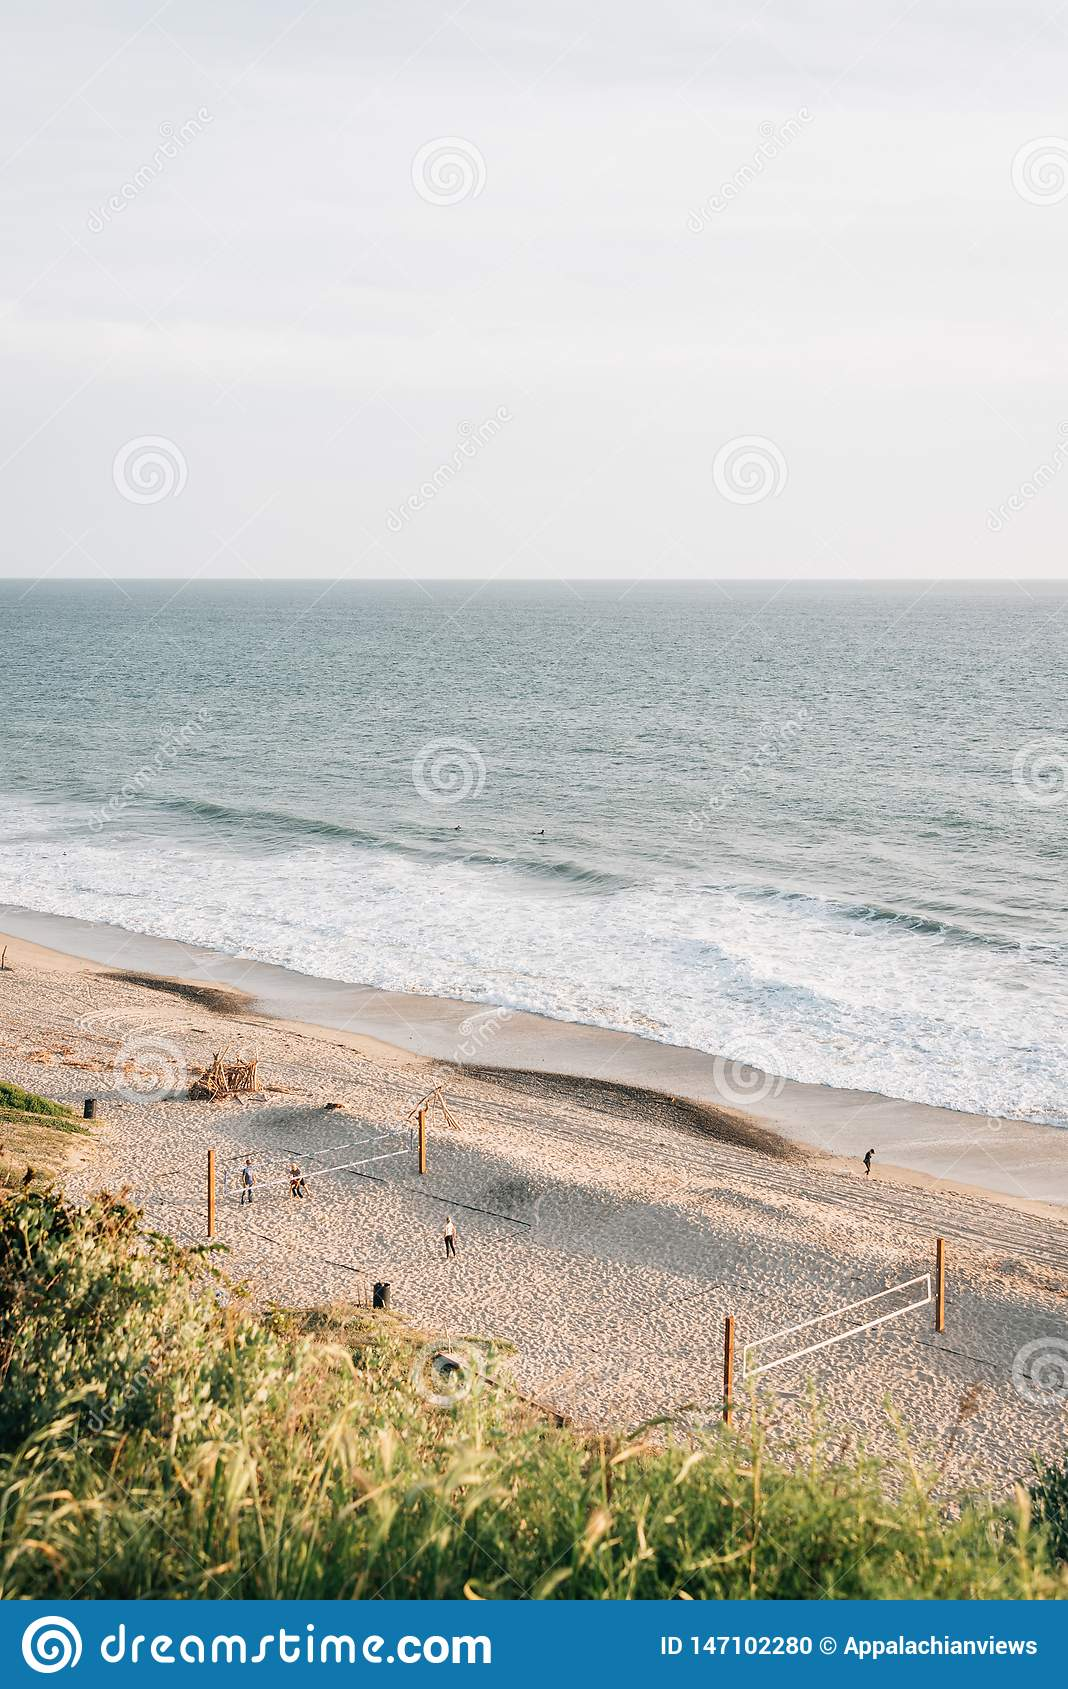 View of a beach from Leslie Park in San Clemente, Orange County, California